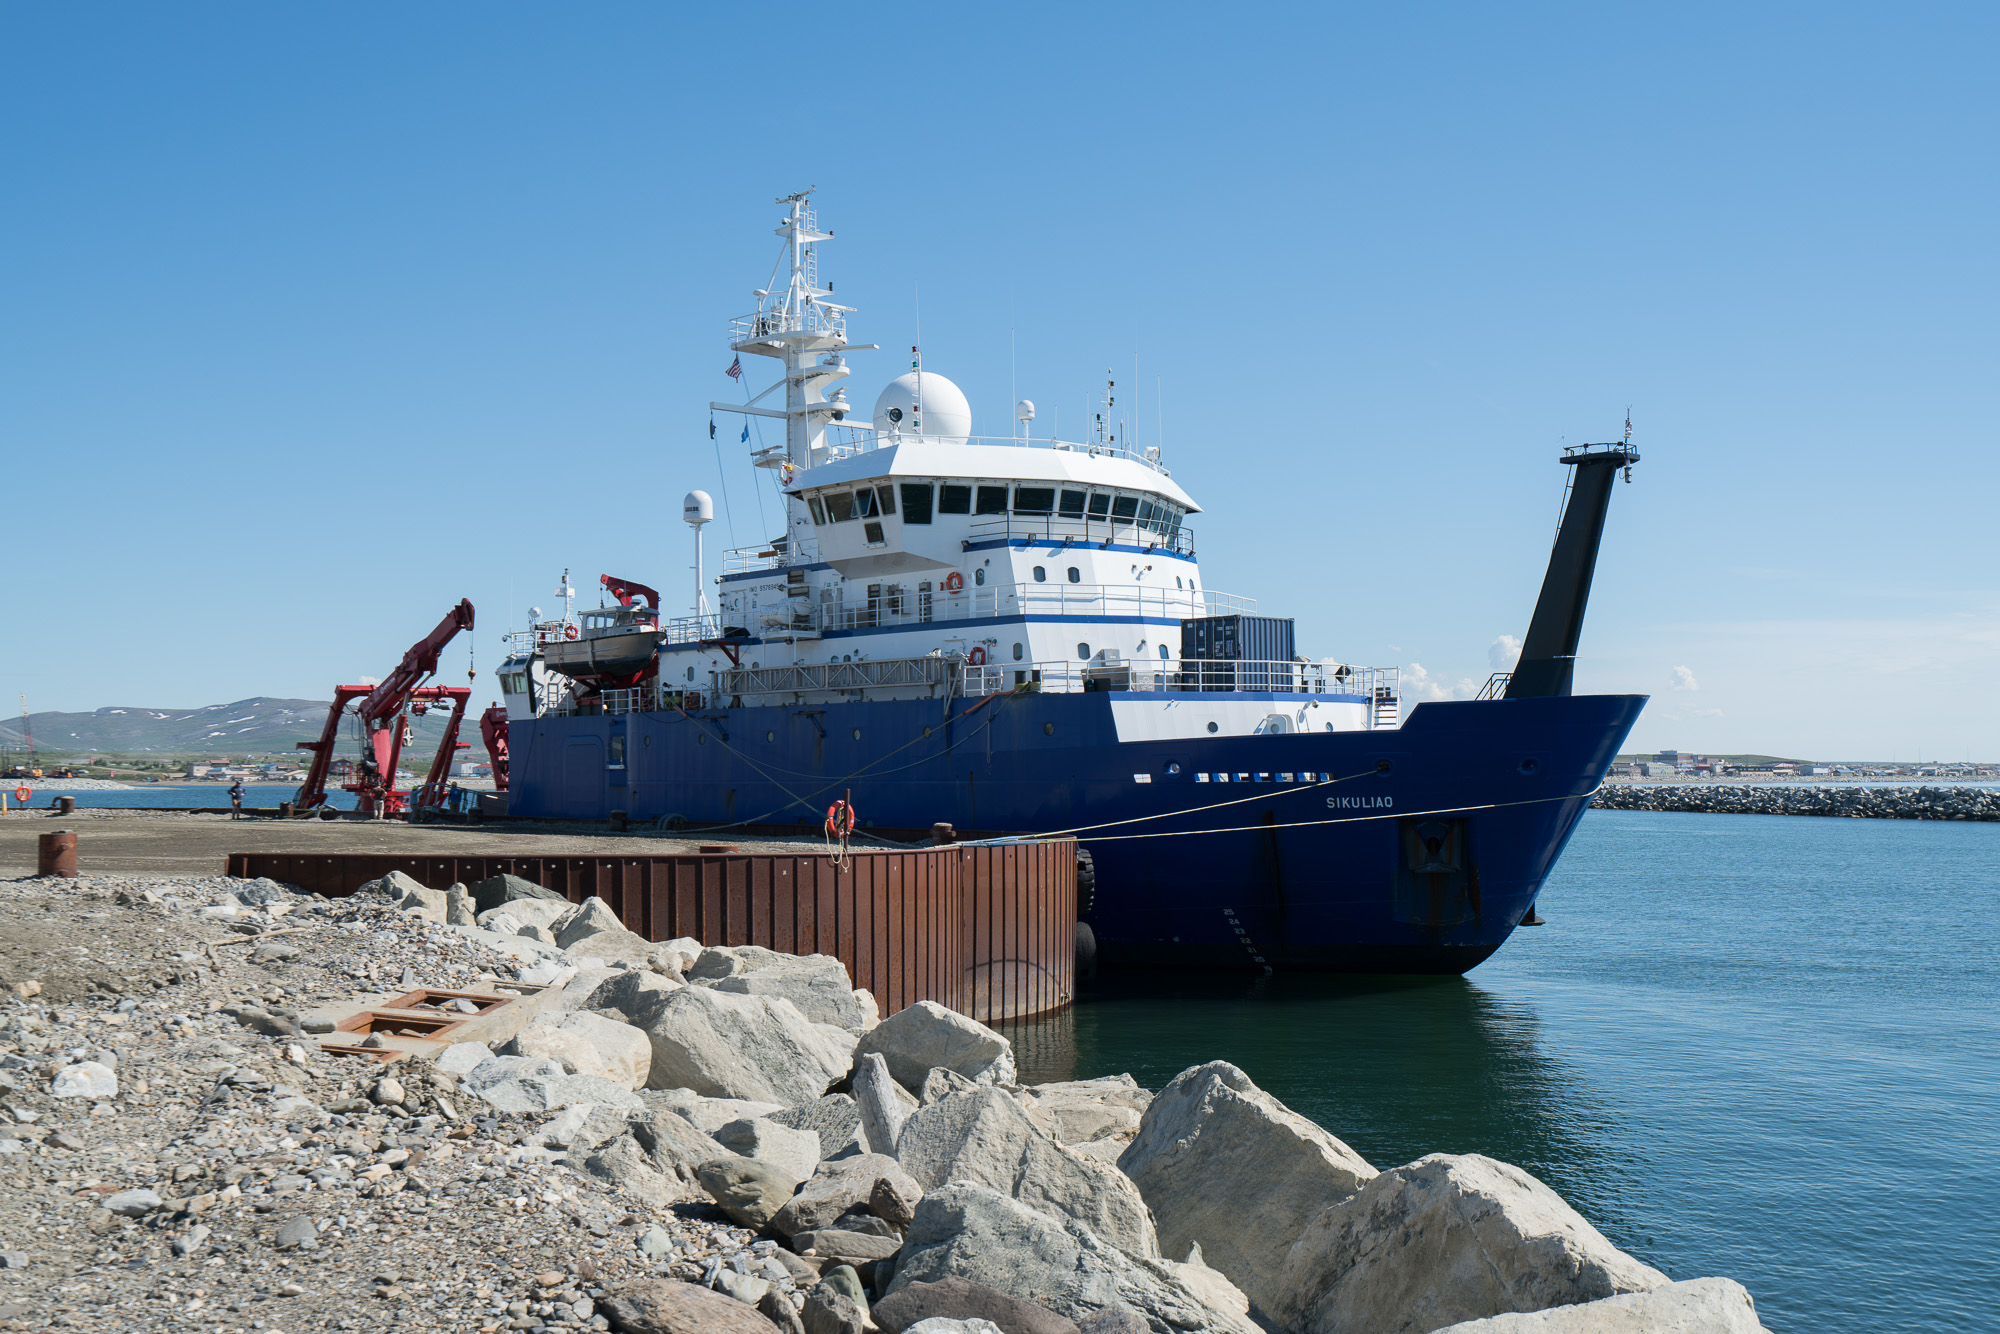 The R/V  Sikuliaq  is dockside in Nome. Photo credit: Andrew McDonnell